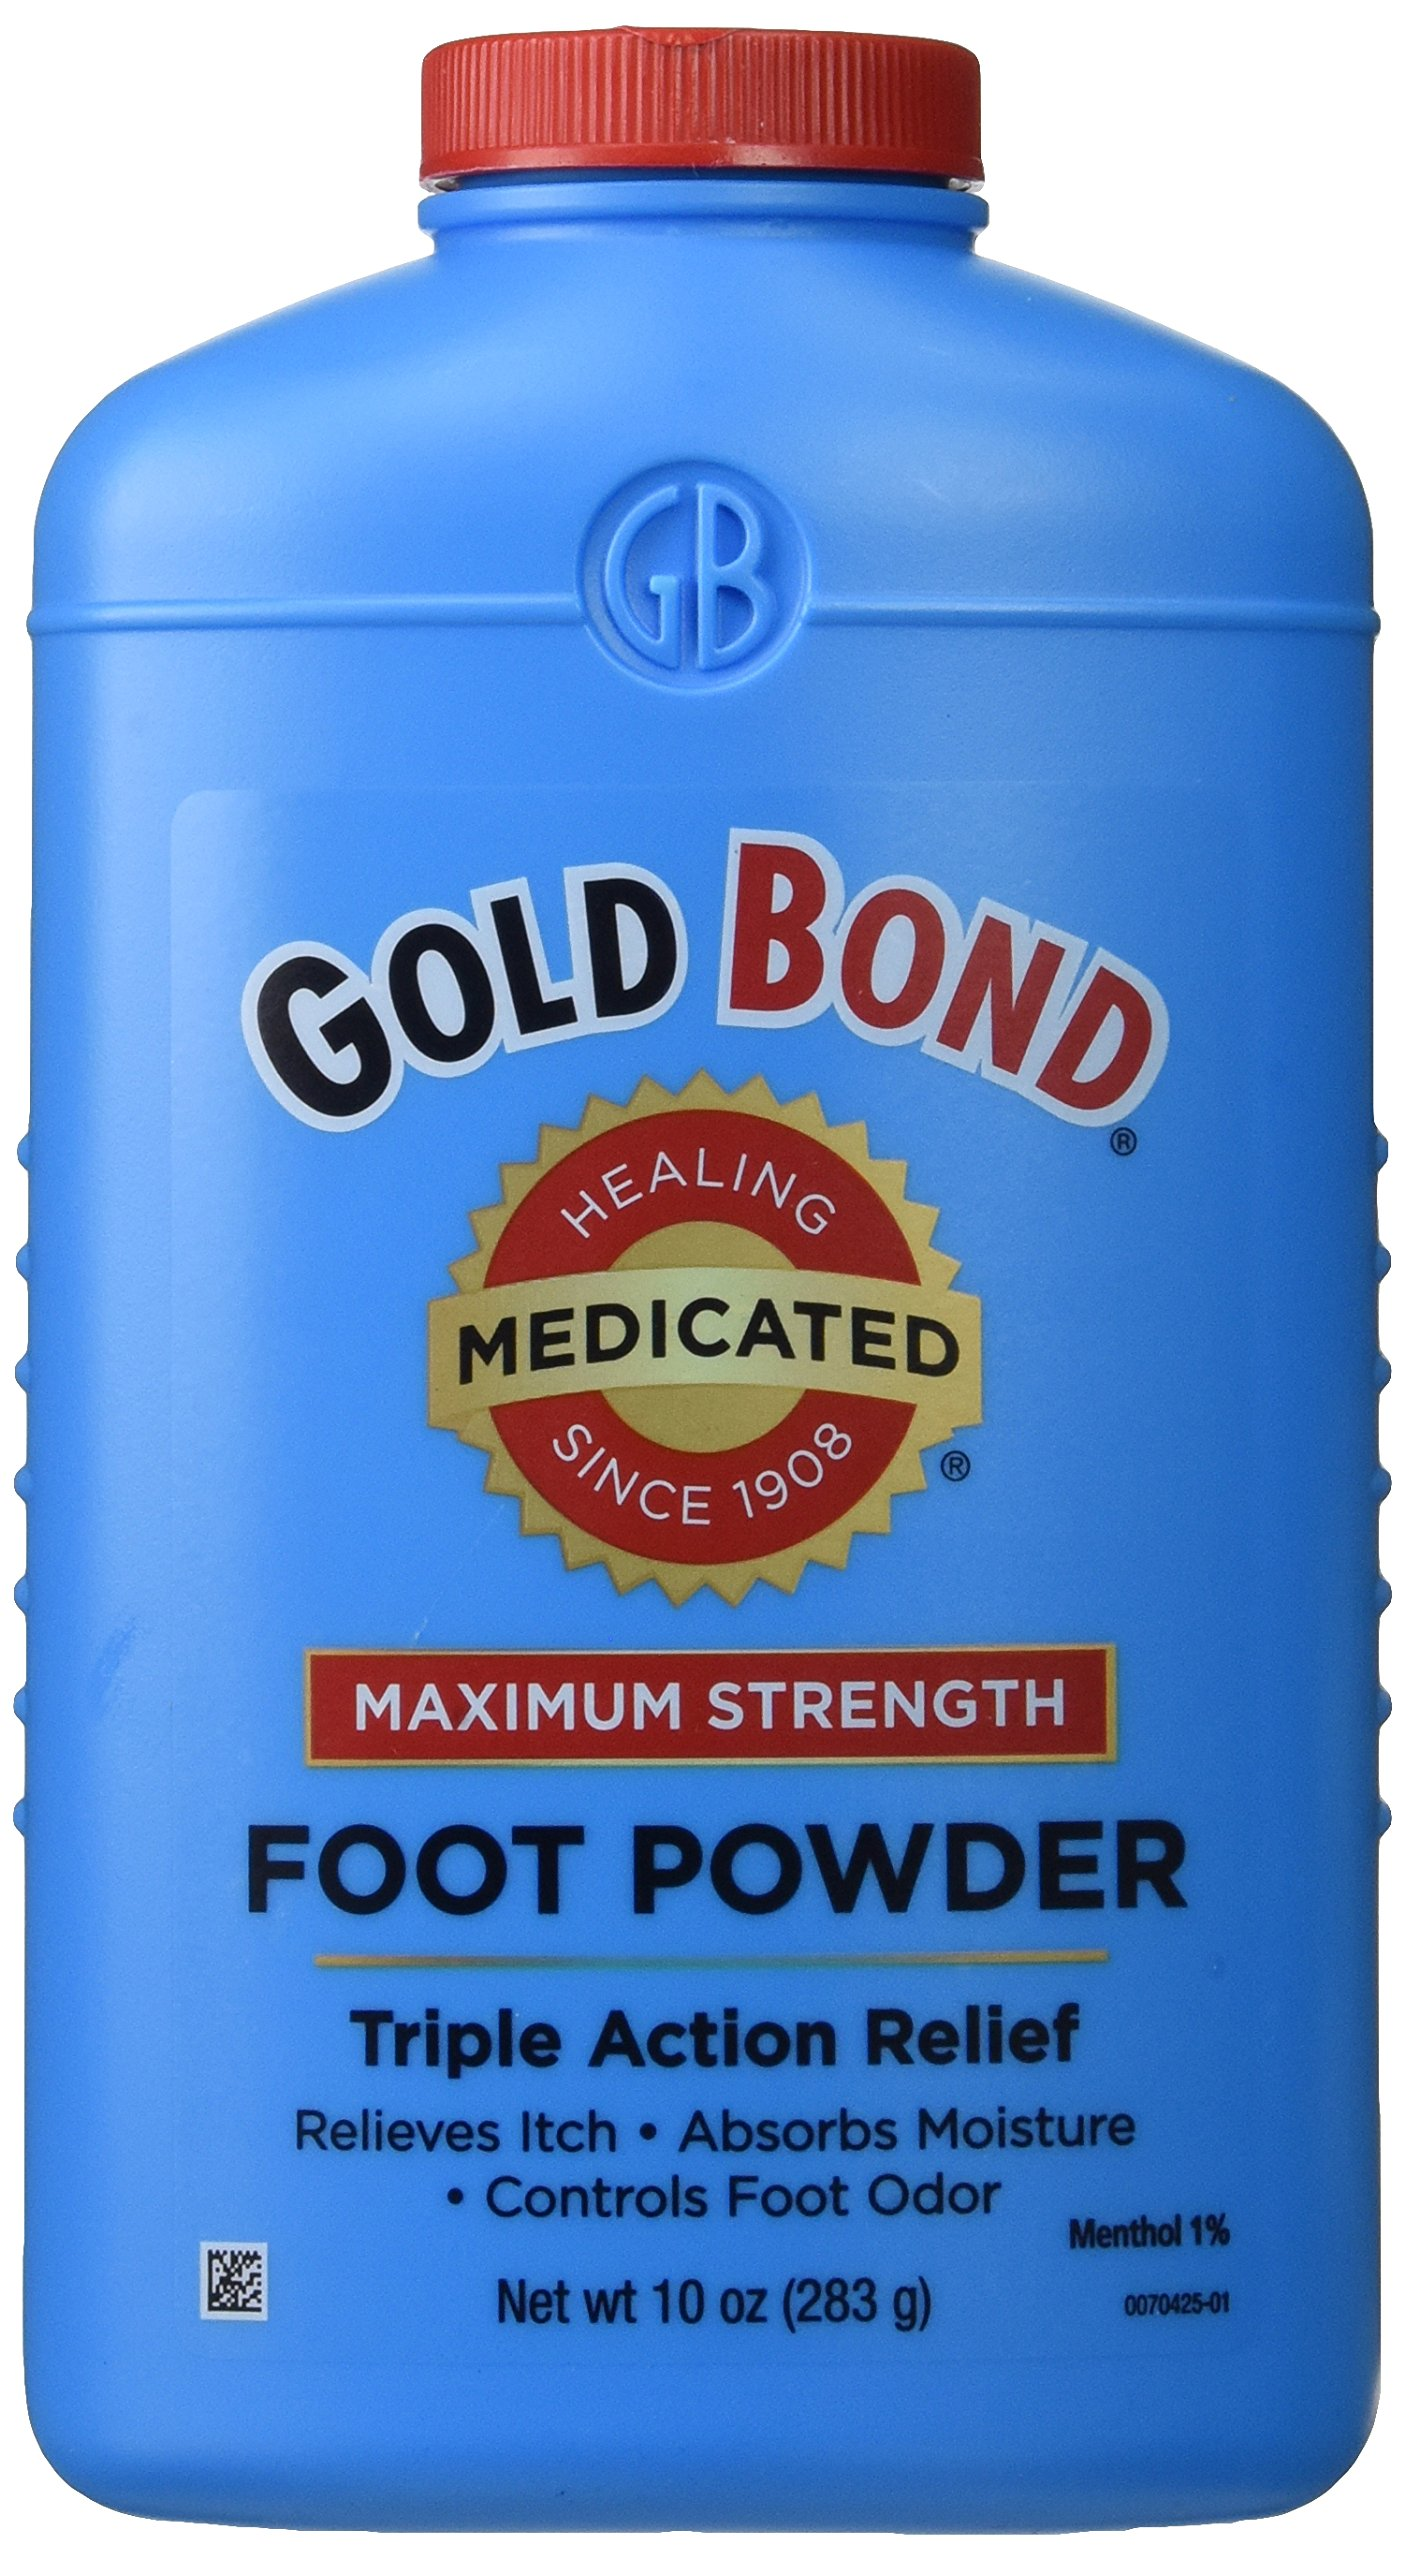 Gold Bond Medicated Foot Powder - 10 Oz (Pack of 2) by Gold Bond